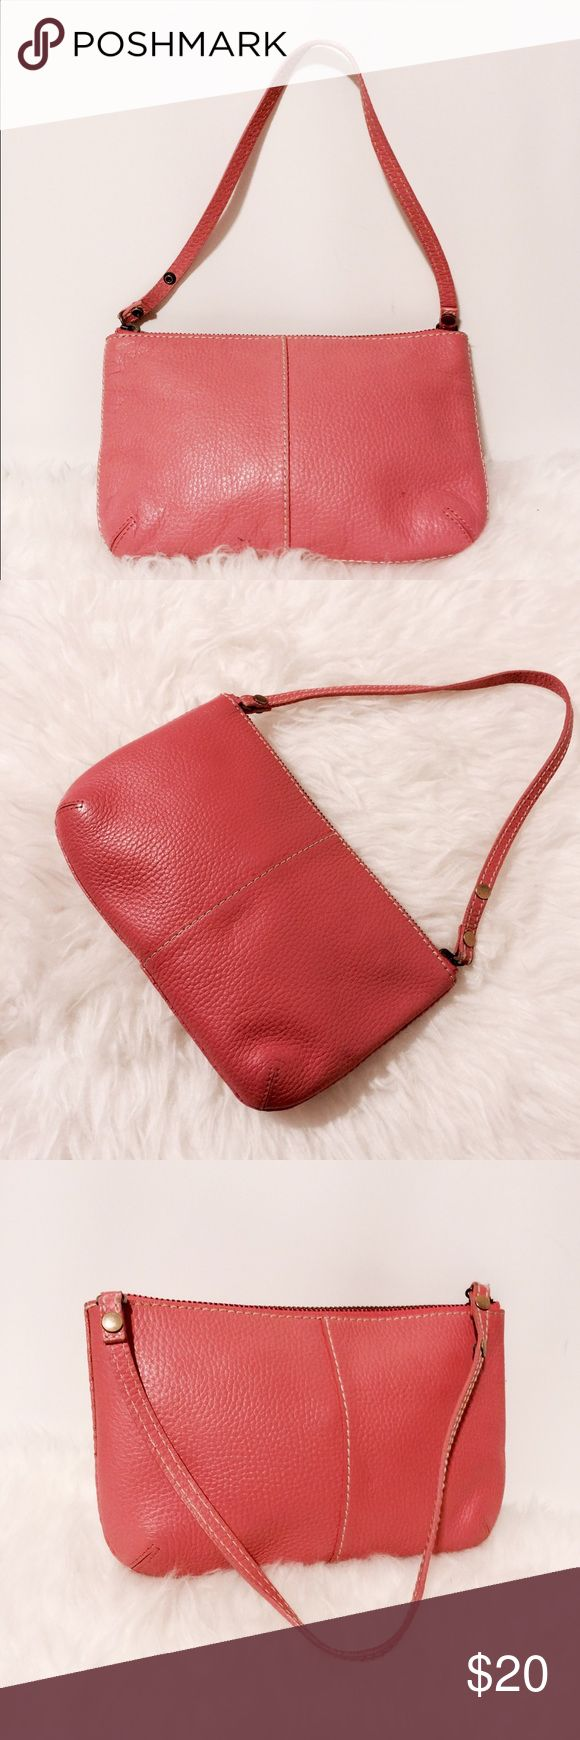 ✨ GAP Pink Pebble Grain Leather Wristlet Cute! Pink pebble grain leather with cream top topstitching. Features zipper closure One into yet super pocket fully lined and white and pink polkadots. 100% Leather GAP Bags Clutches & Wristlets